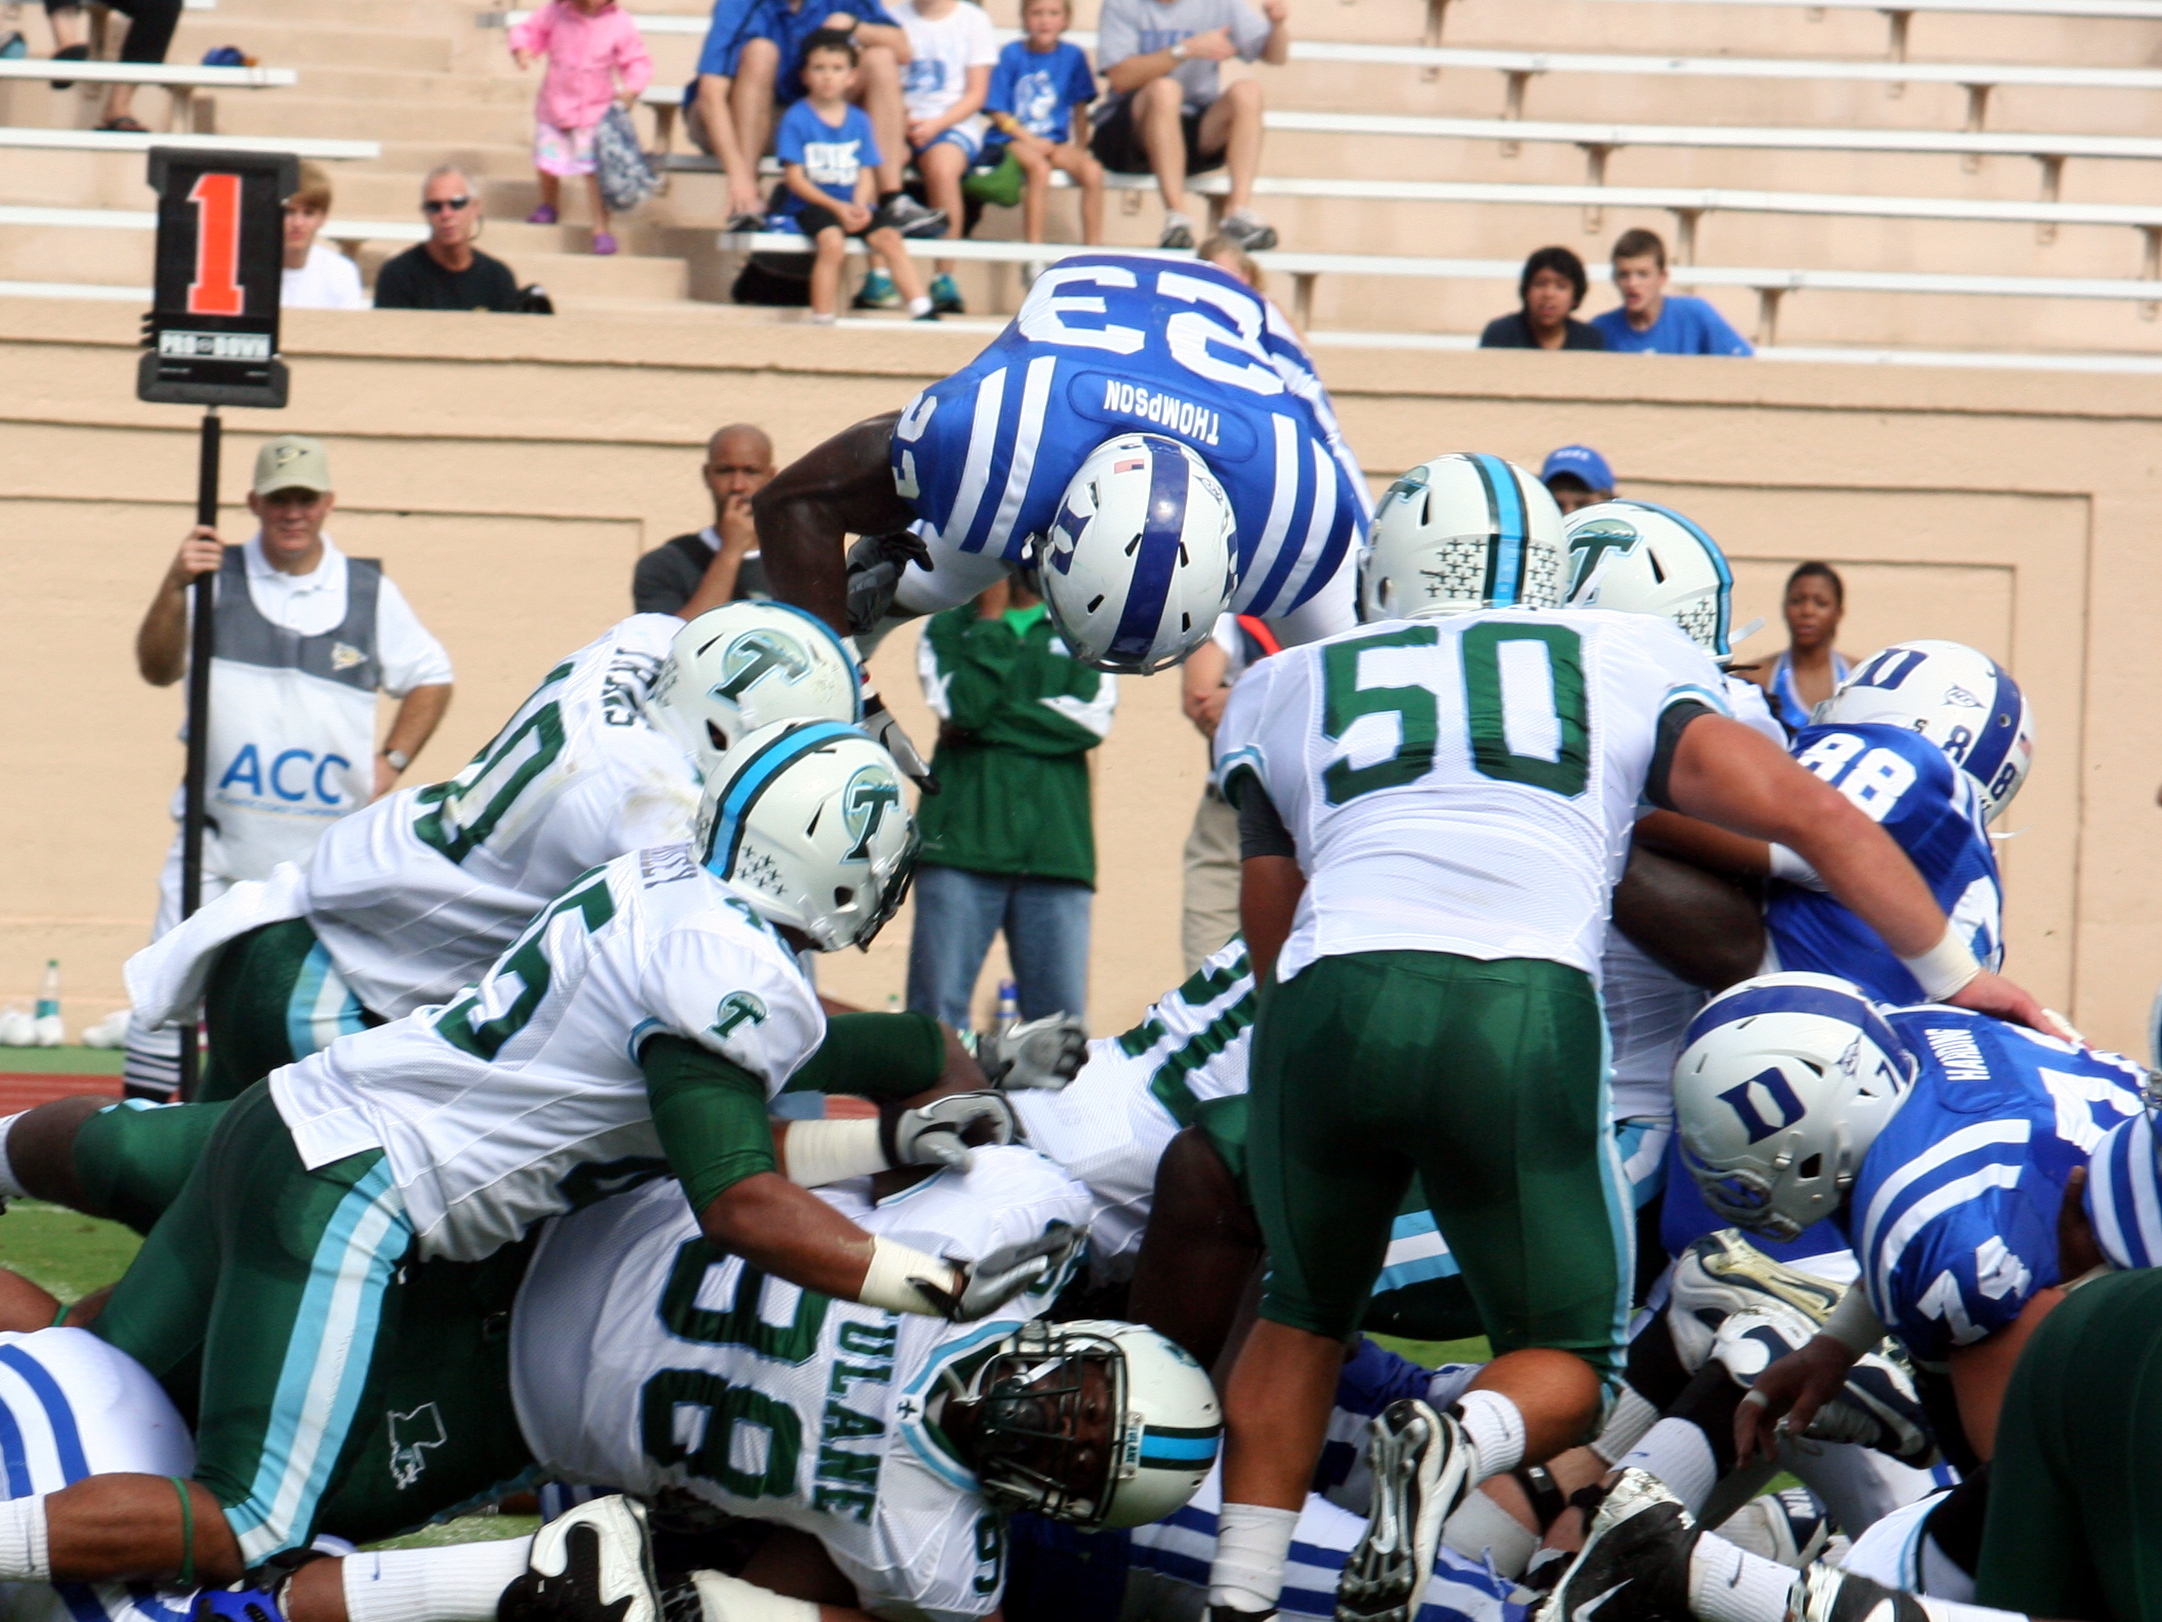 Duke RB Juwan Thompson leaps the pile for the touchdown against Tulane -BDN Photo